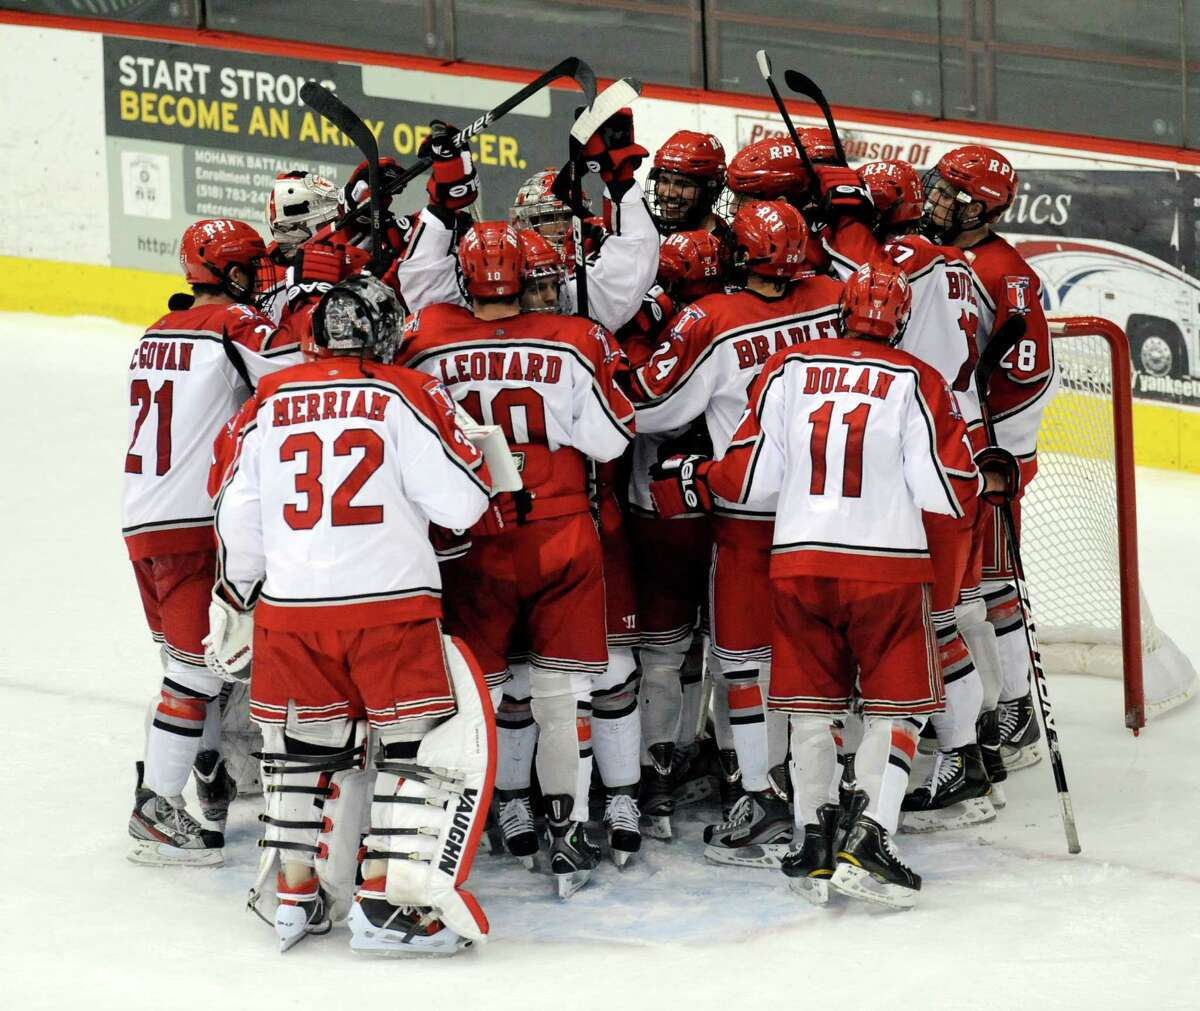 Rensselaer Polytechnic Institute's celebrates a 3-1 win over Ferris State during their college hockey game in Troy N.Y., Friday, Oct. 12, 2012. (Hans Pennink / Special to the Times Union) College Sports.